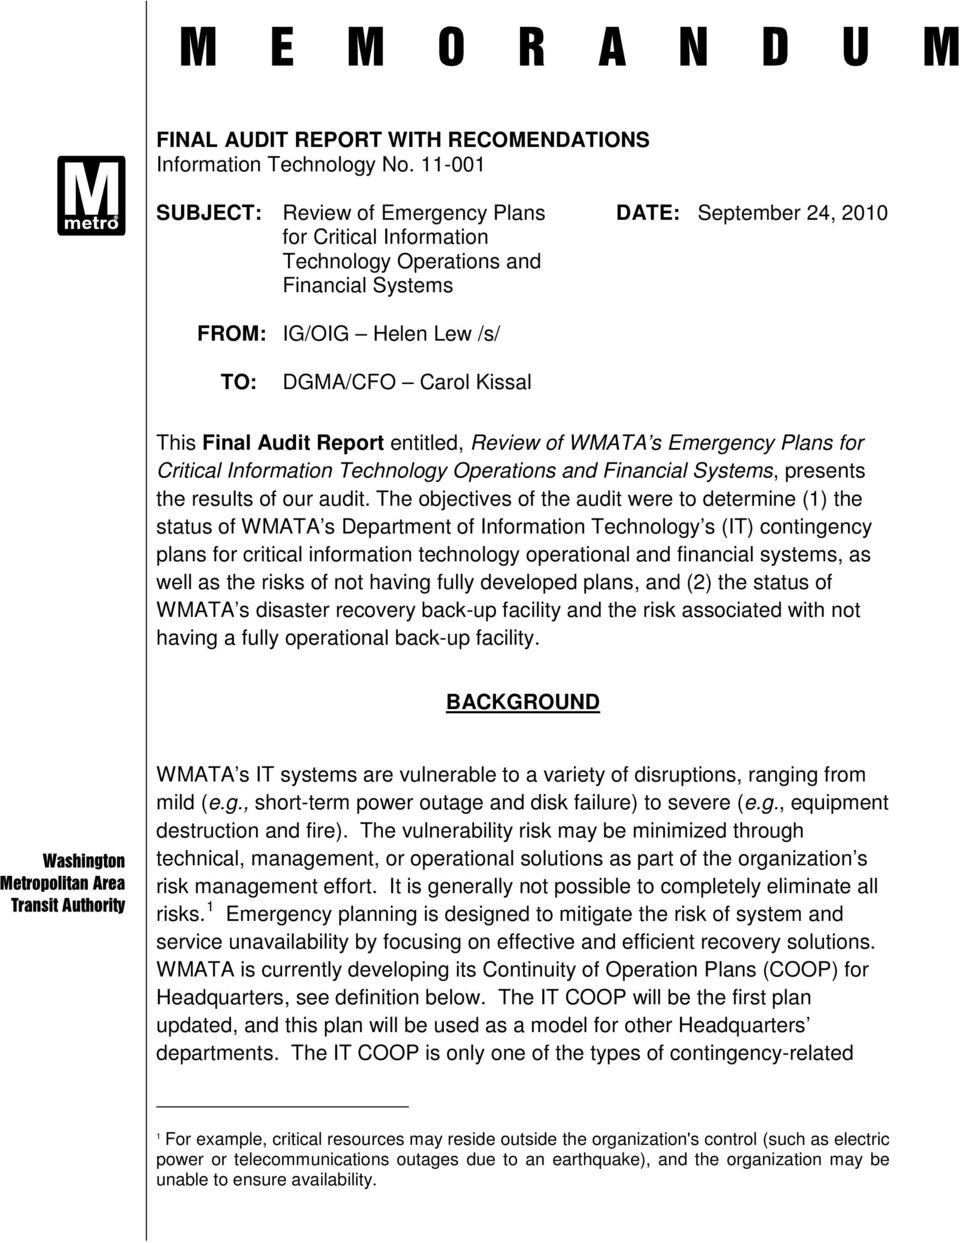 Audit Report entitled, Review of WMATA s Emergency Plans for Critical Information Technology Operations and Financial Systems, presents the results of our audit.